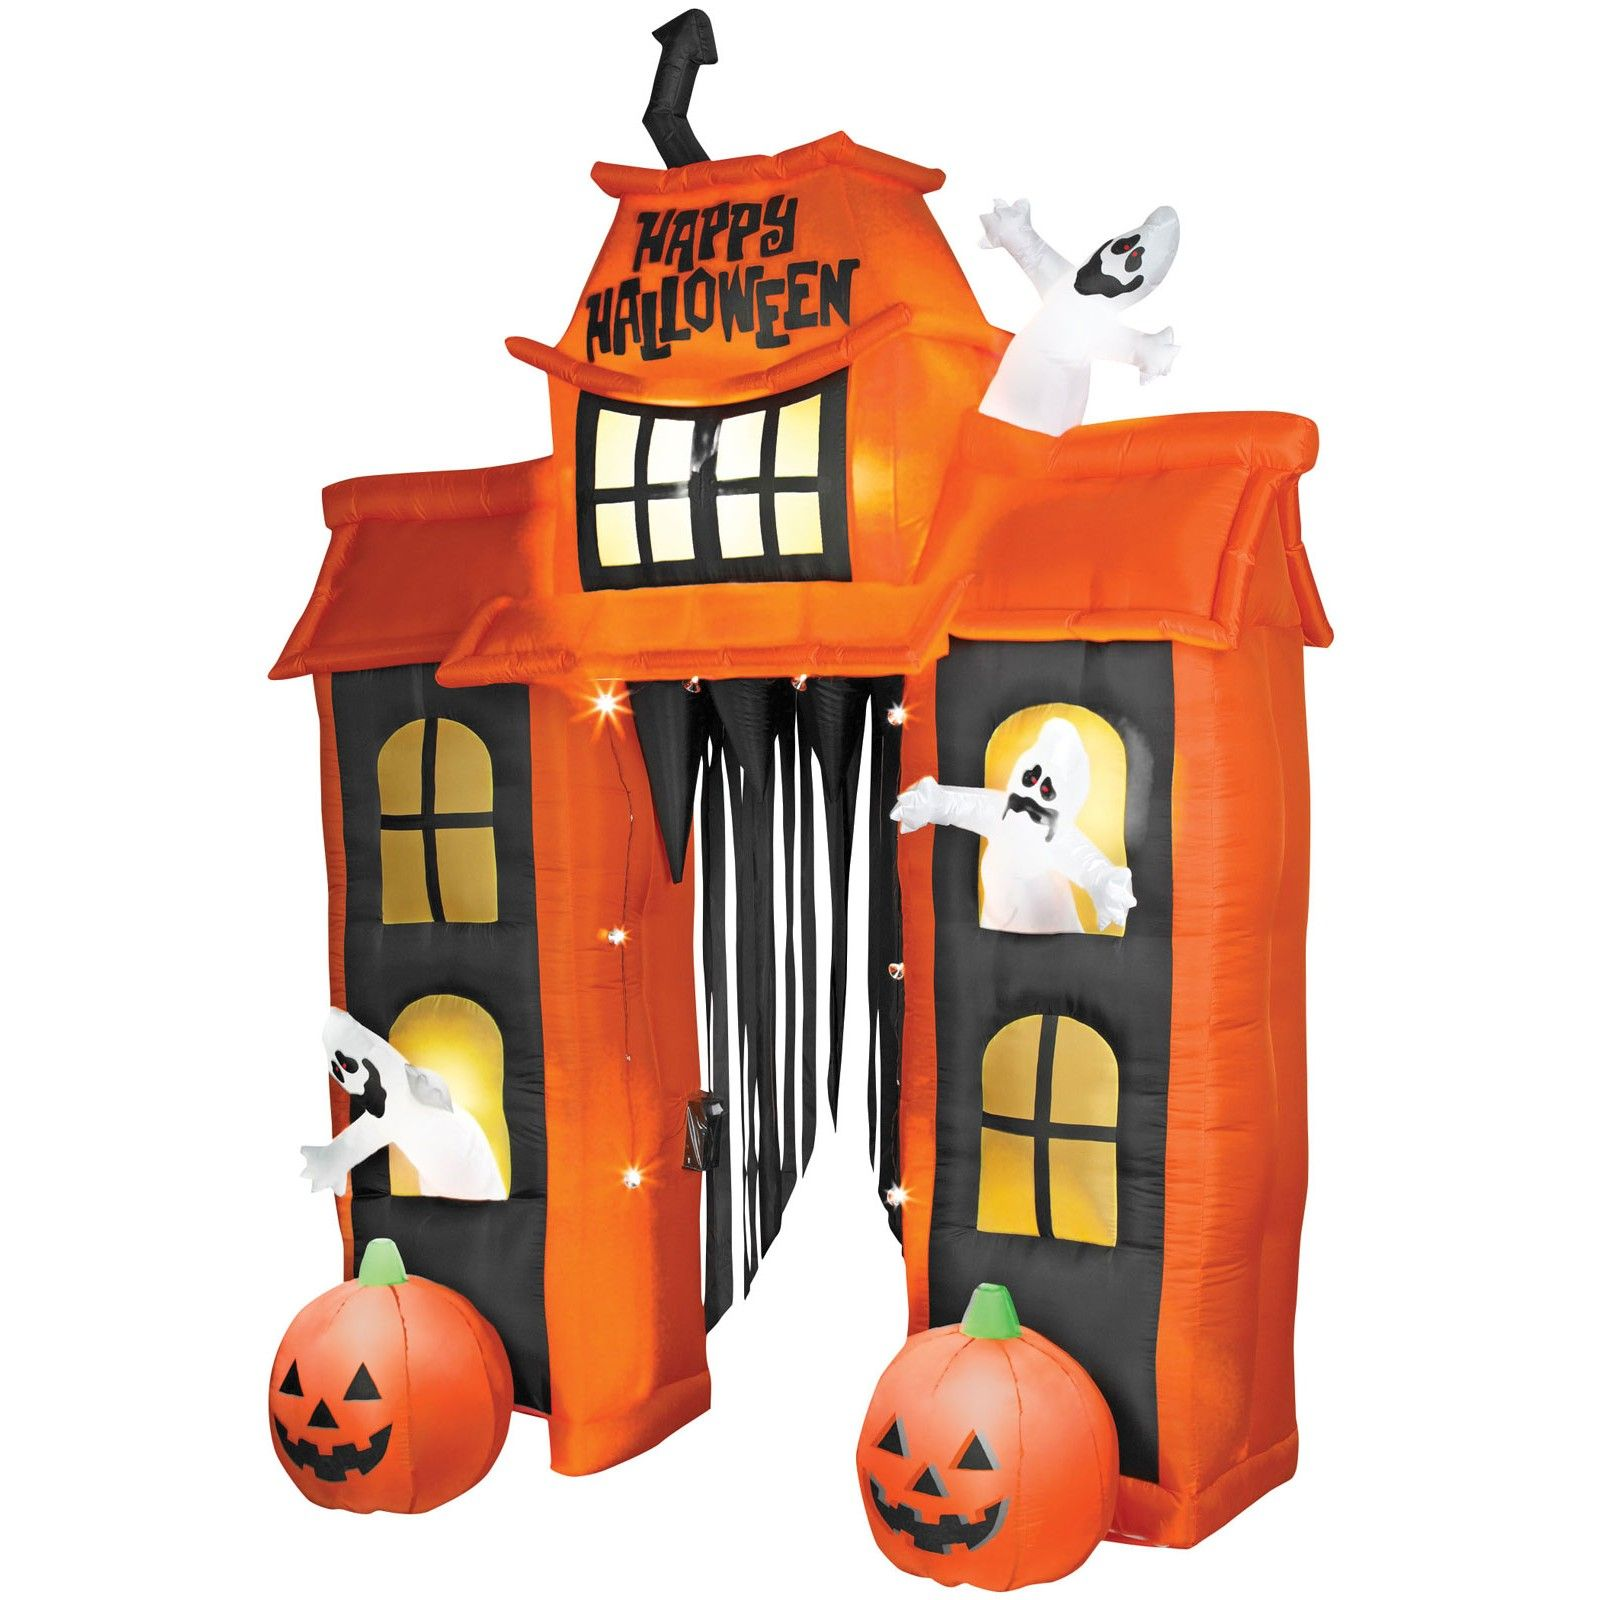 Halloween Decorations - Haunted House Archway Airblown